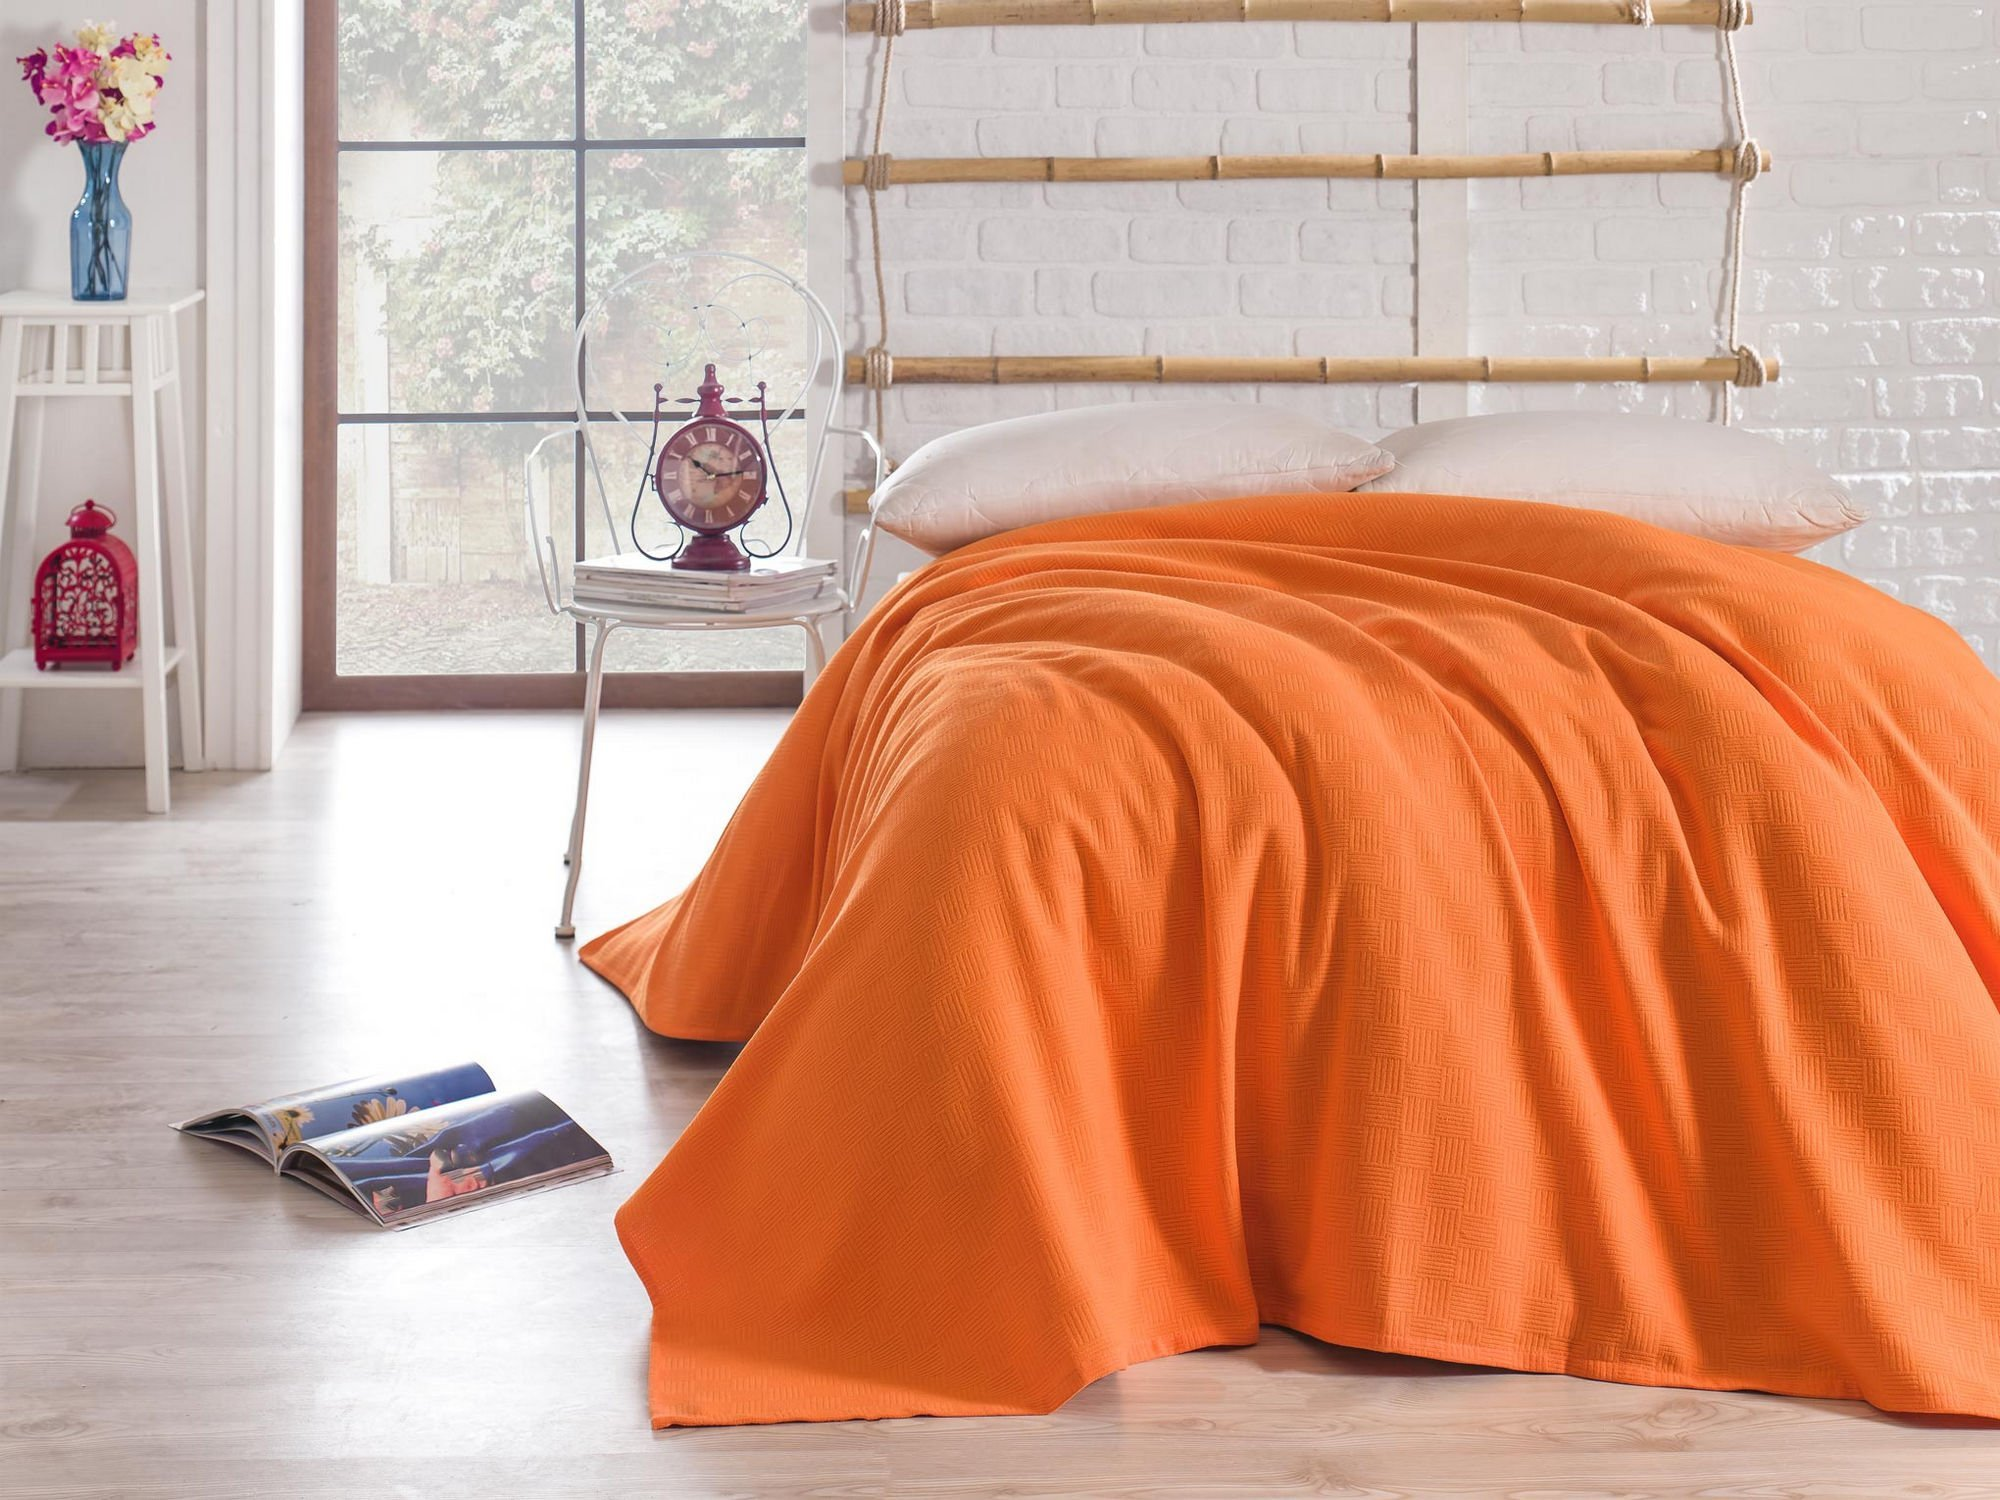 LaModaHome Colors Coverlet, 100% Cotton - Orange One Colored, Plain, Basic - Size (78.7'' x 78.8'') for Double and Full Bed